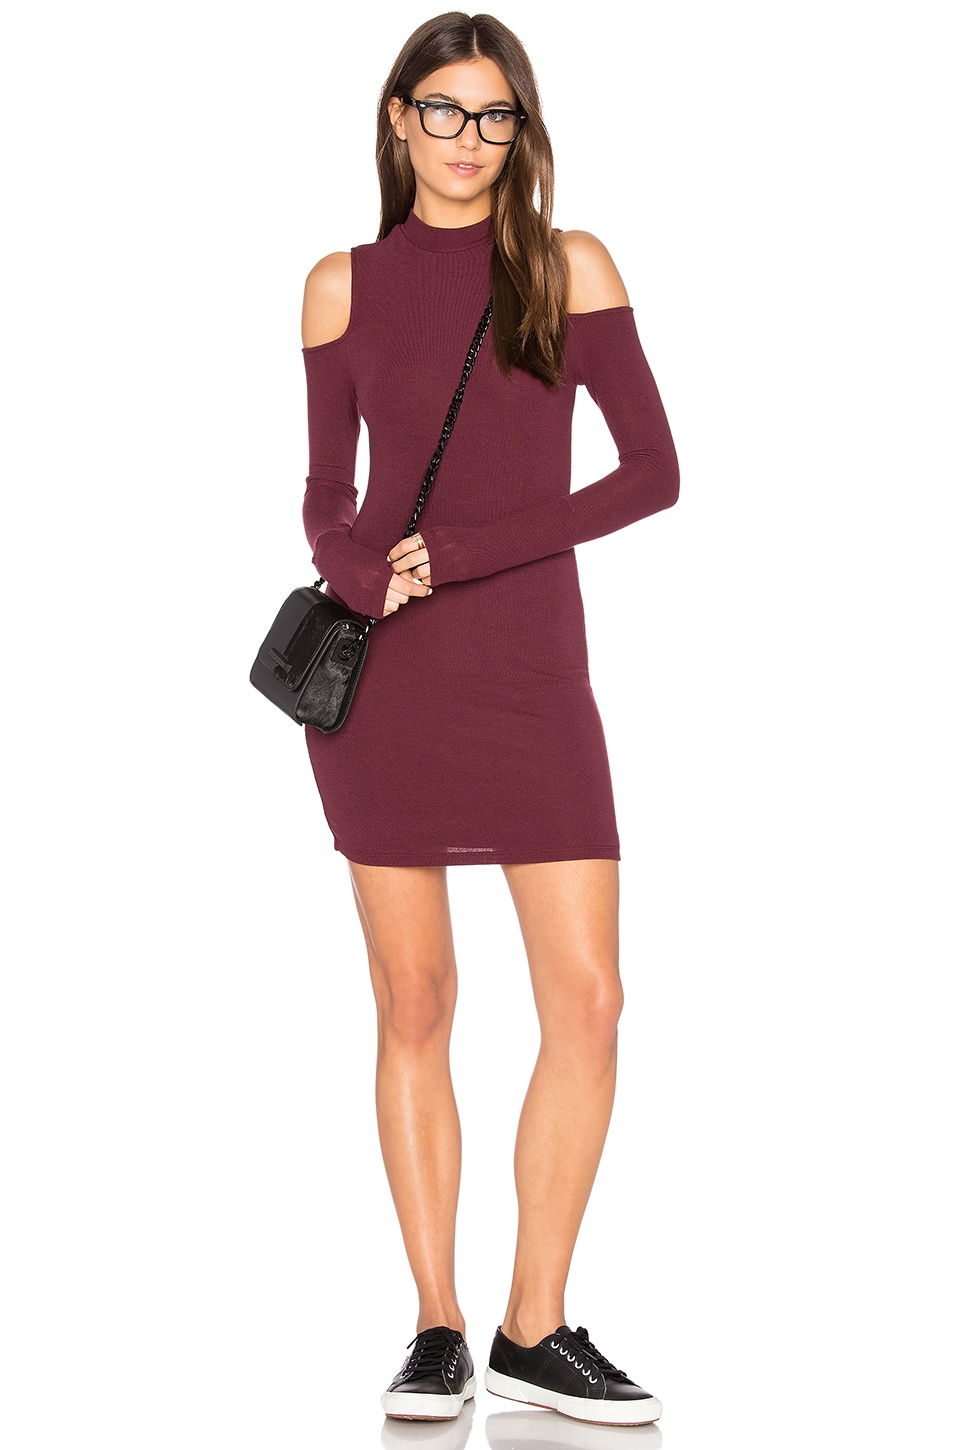 BLQ BASIQ Cold Shoulder Mini Dress in Burgundy